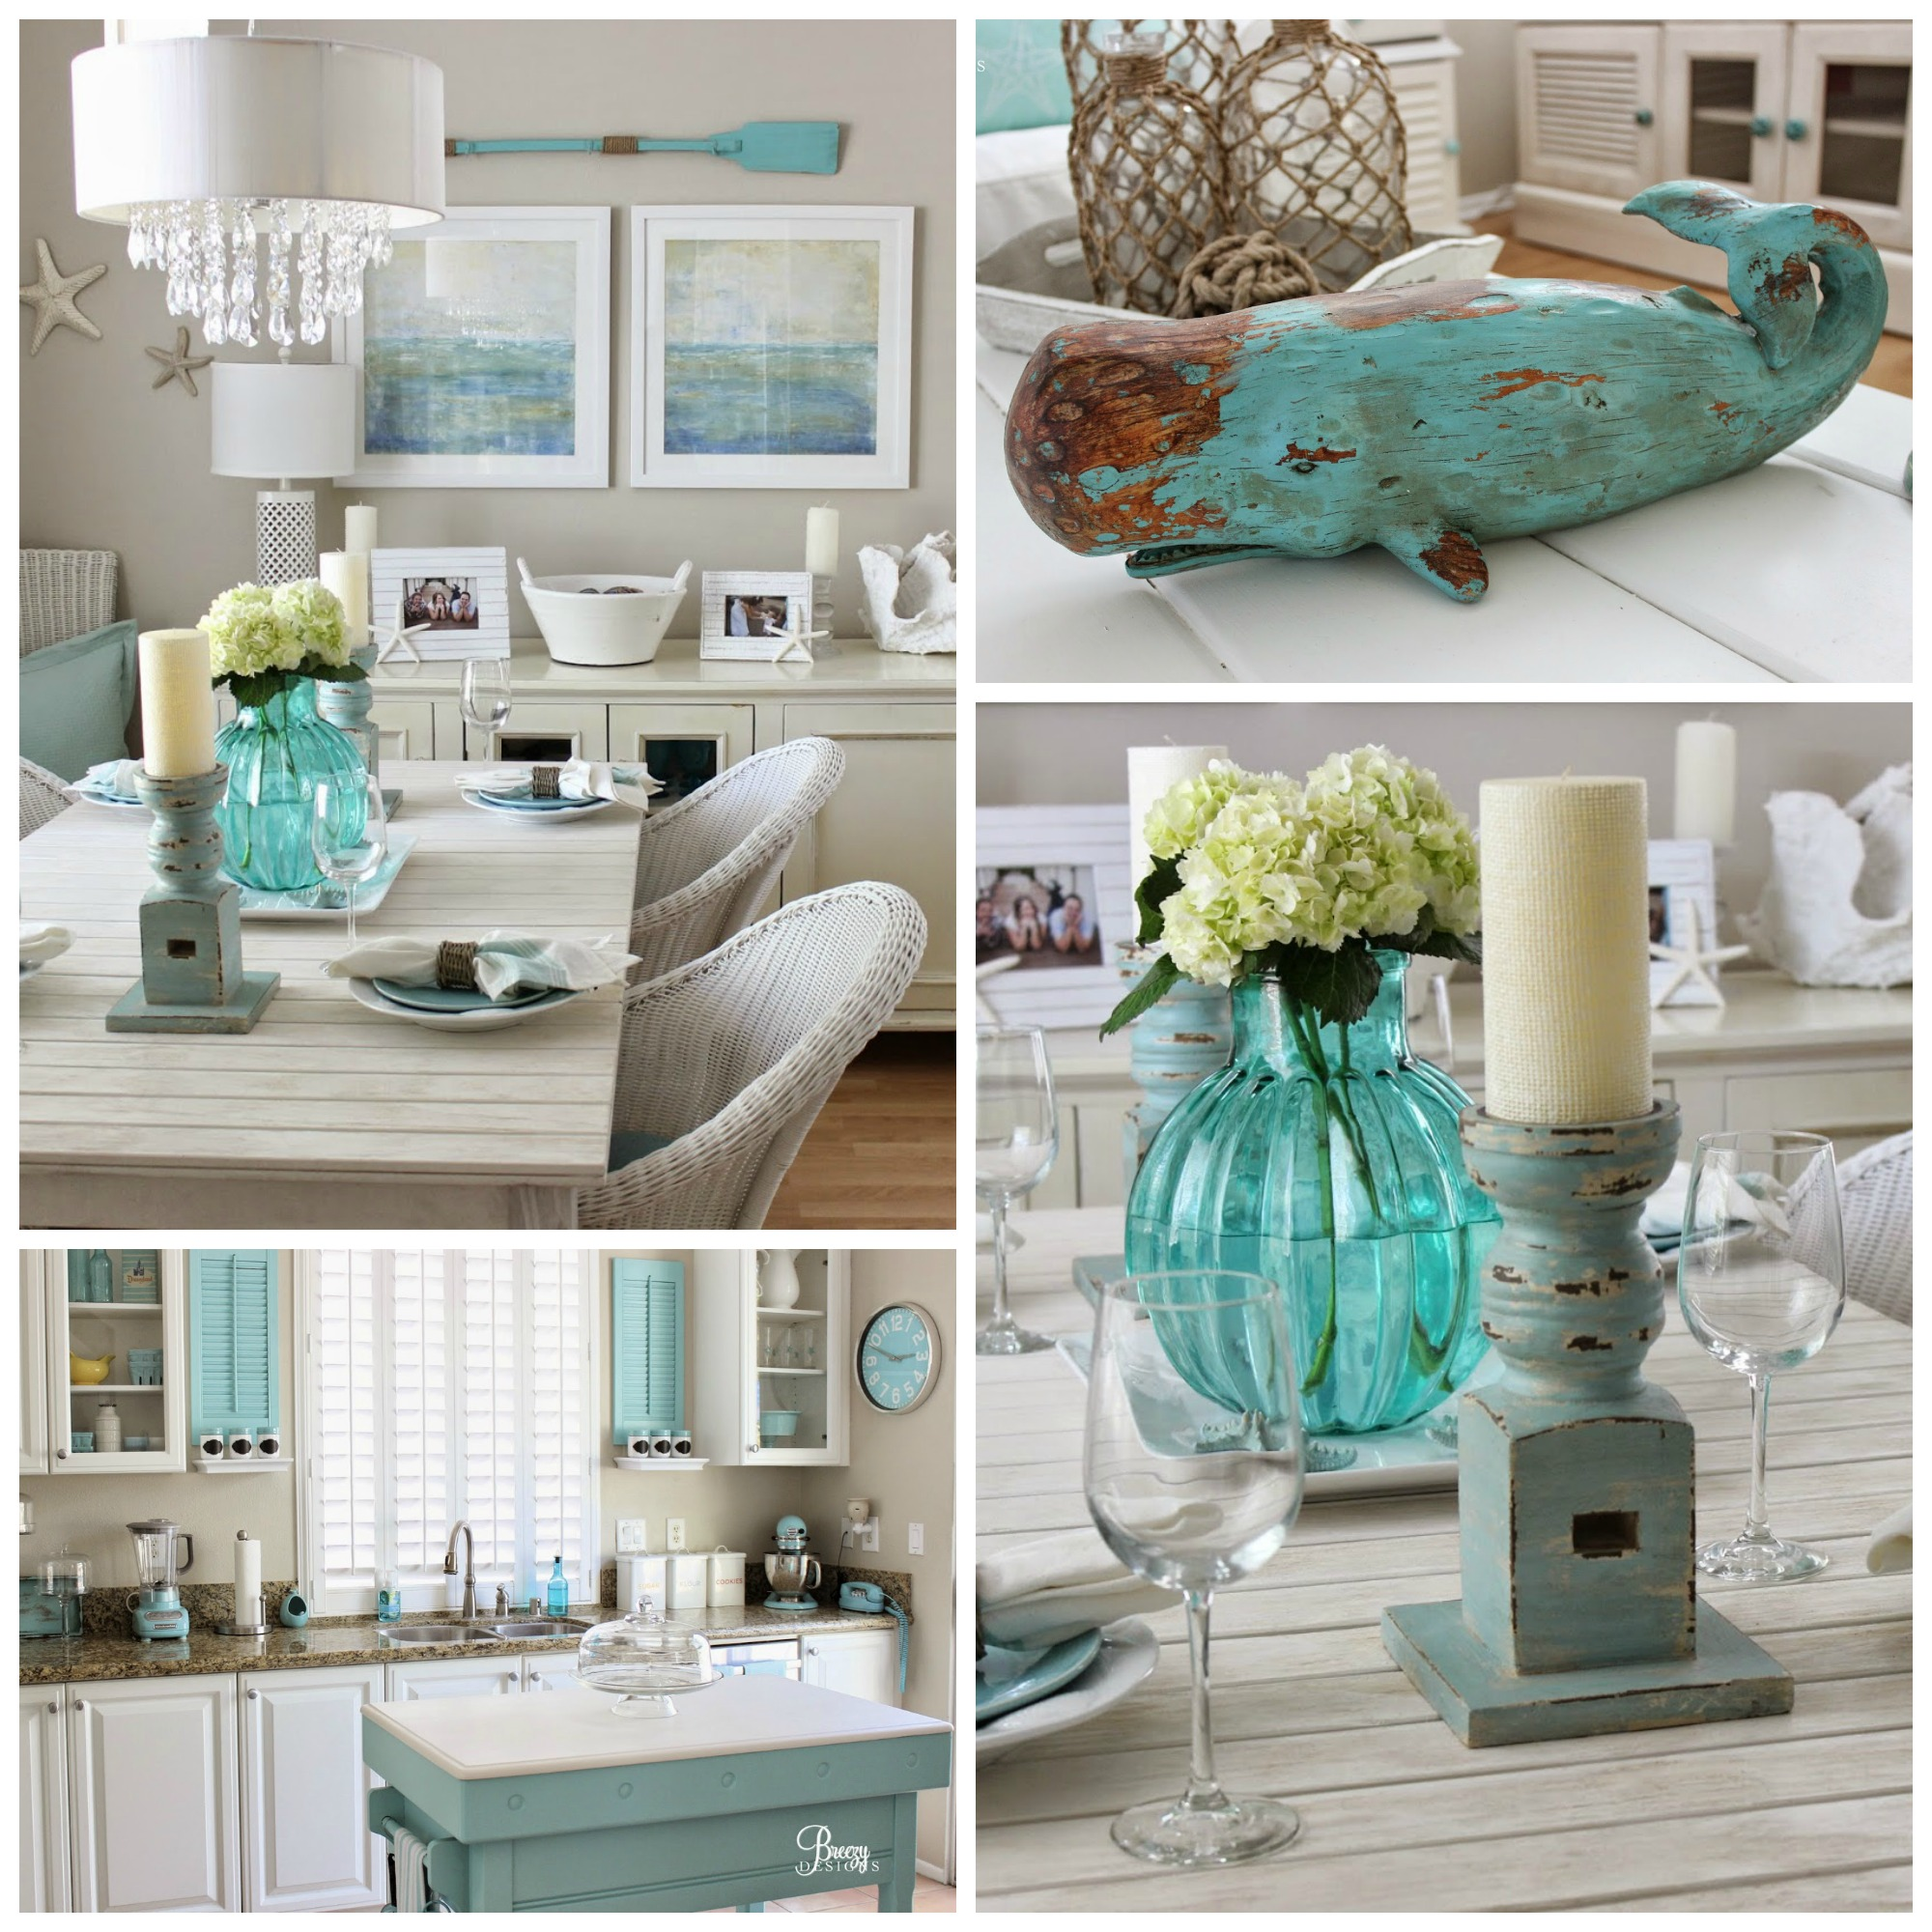 Beach chic coastal cottage home tour with breezy design fox hollow cottage - Inspired diy ideas small kitchen ...